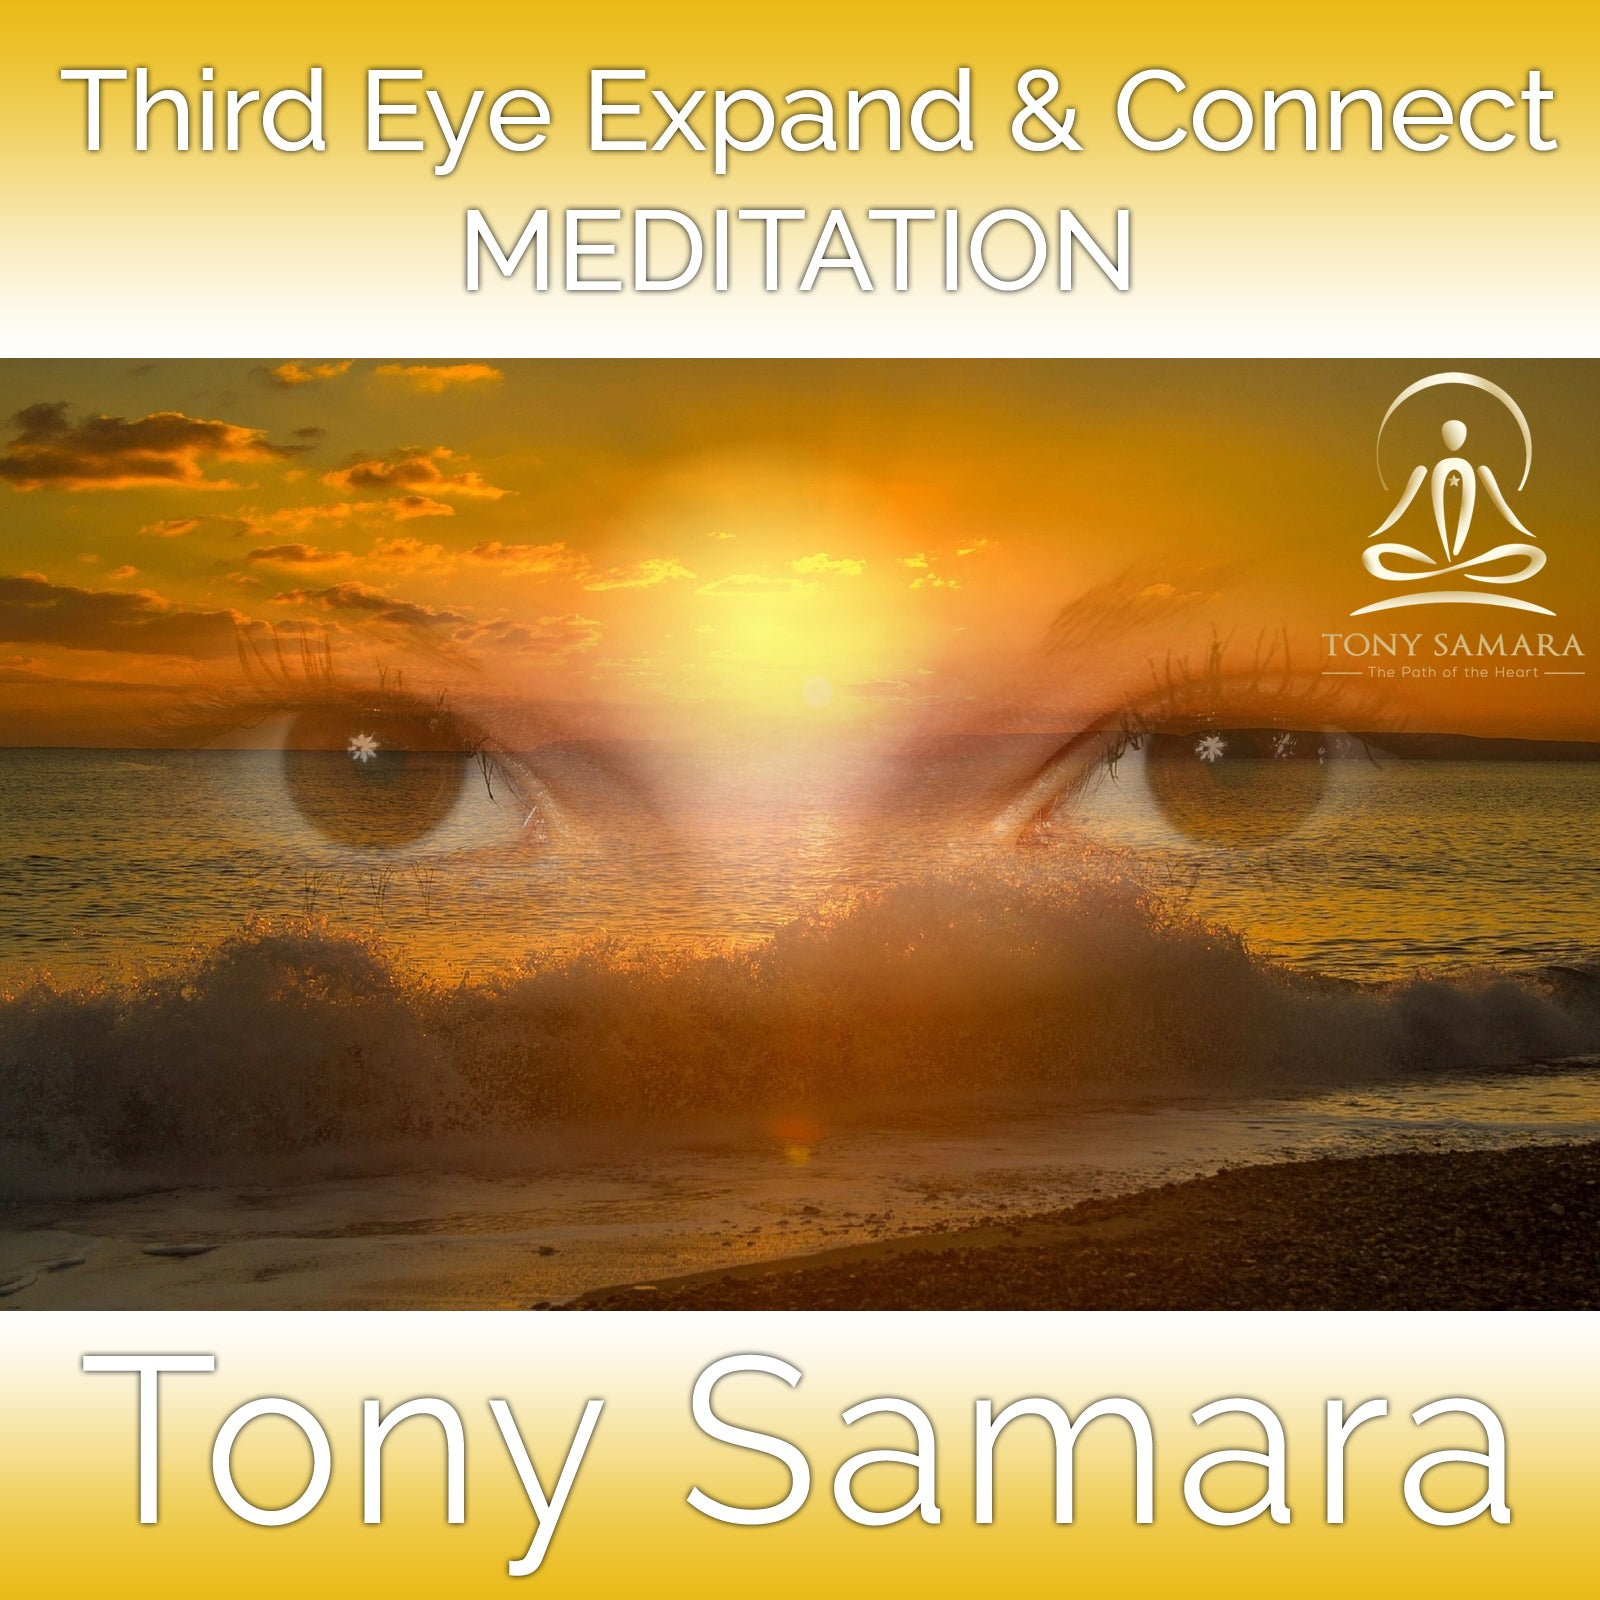 Third Eye Expand & Connect Meditation (MP3 Audio Download) - Tony Samara Meditation